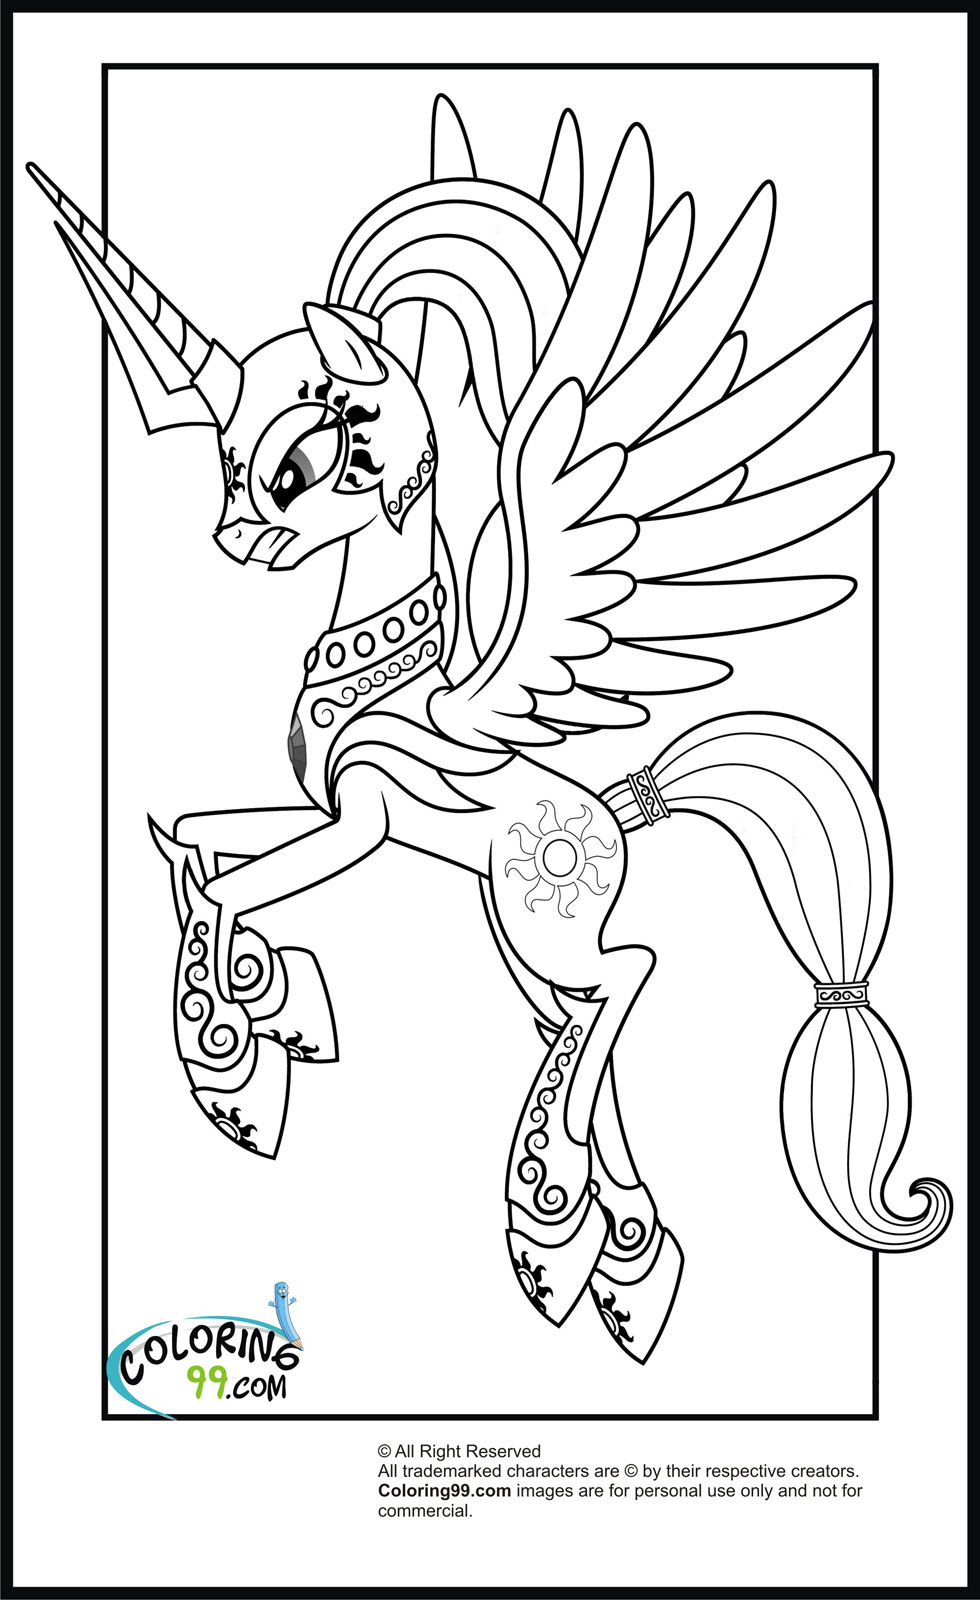 mlp coloring page little pony coloring pages free download on clipartmag coloring mlp page